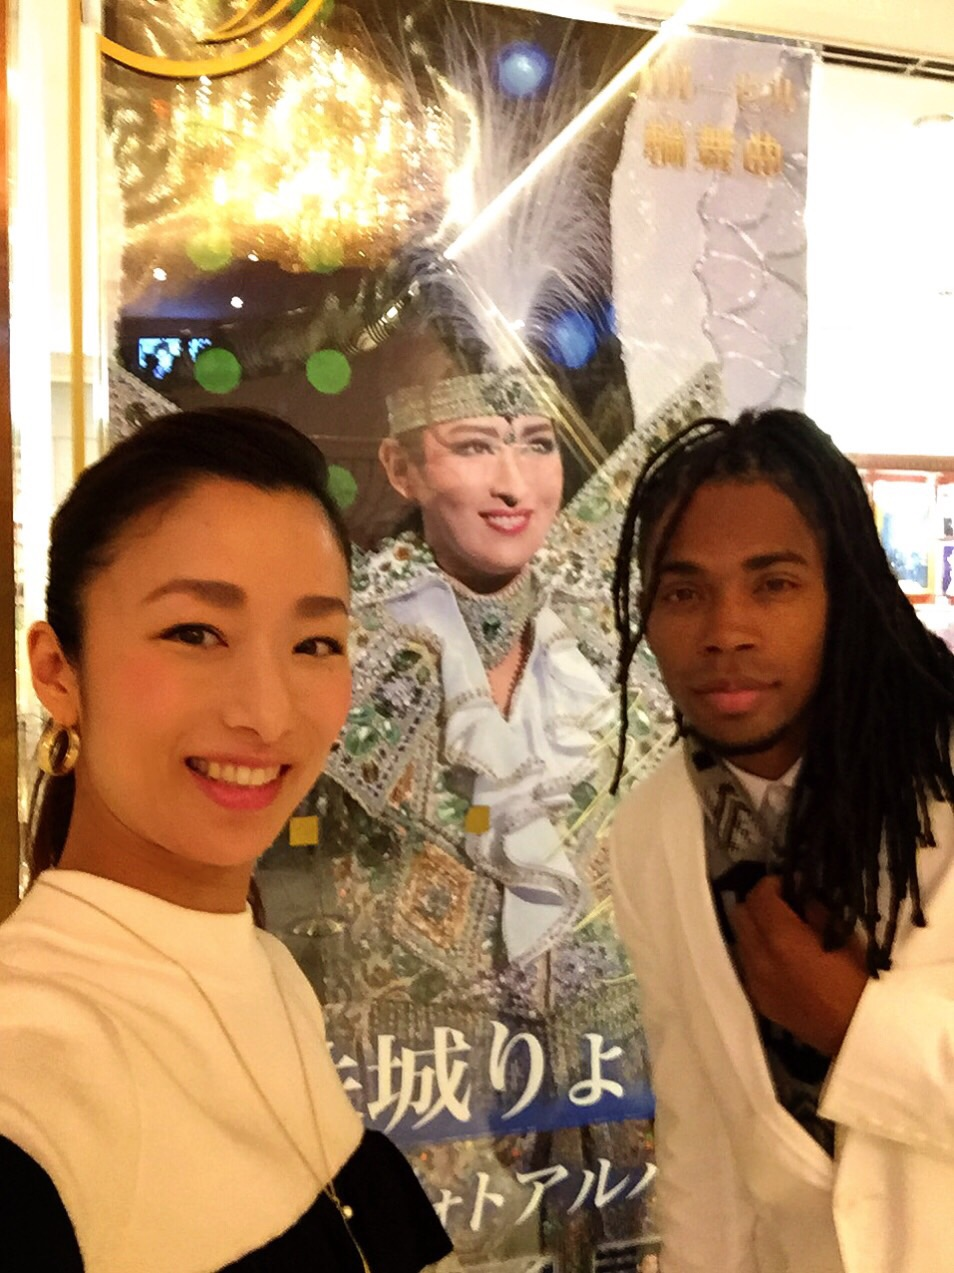 "This picture is with Choreographer, Yoko Moro with whom I worked to create music for shows ""Passionate Takarazuka,"" ""Golden Jazz,""  and ""Grand Hotel/ Carousel Rondo."""